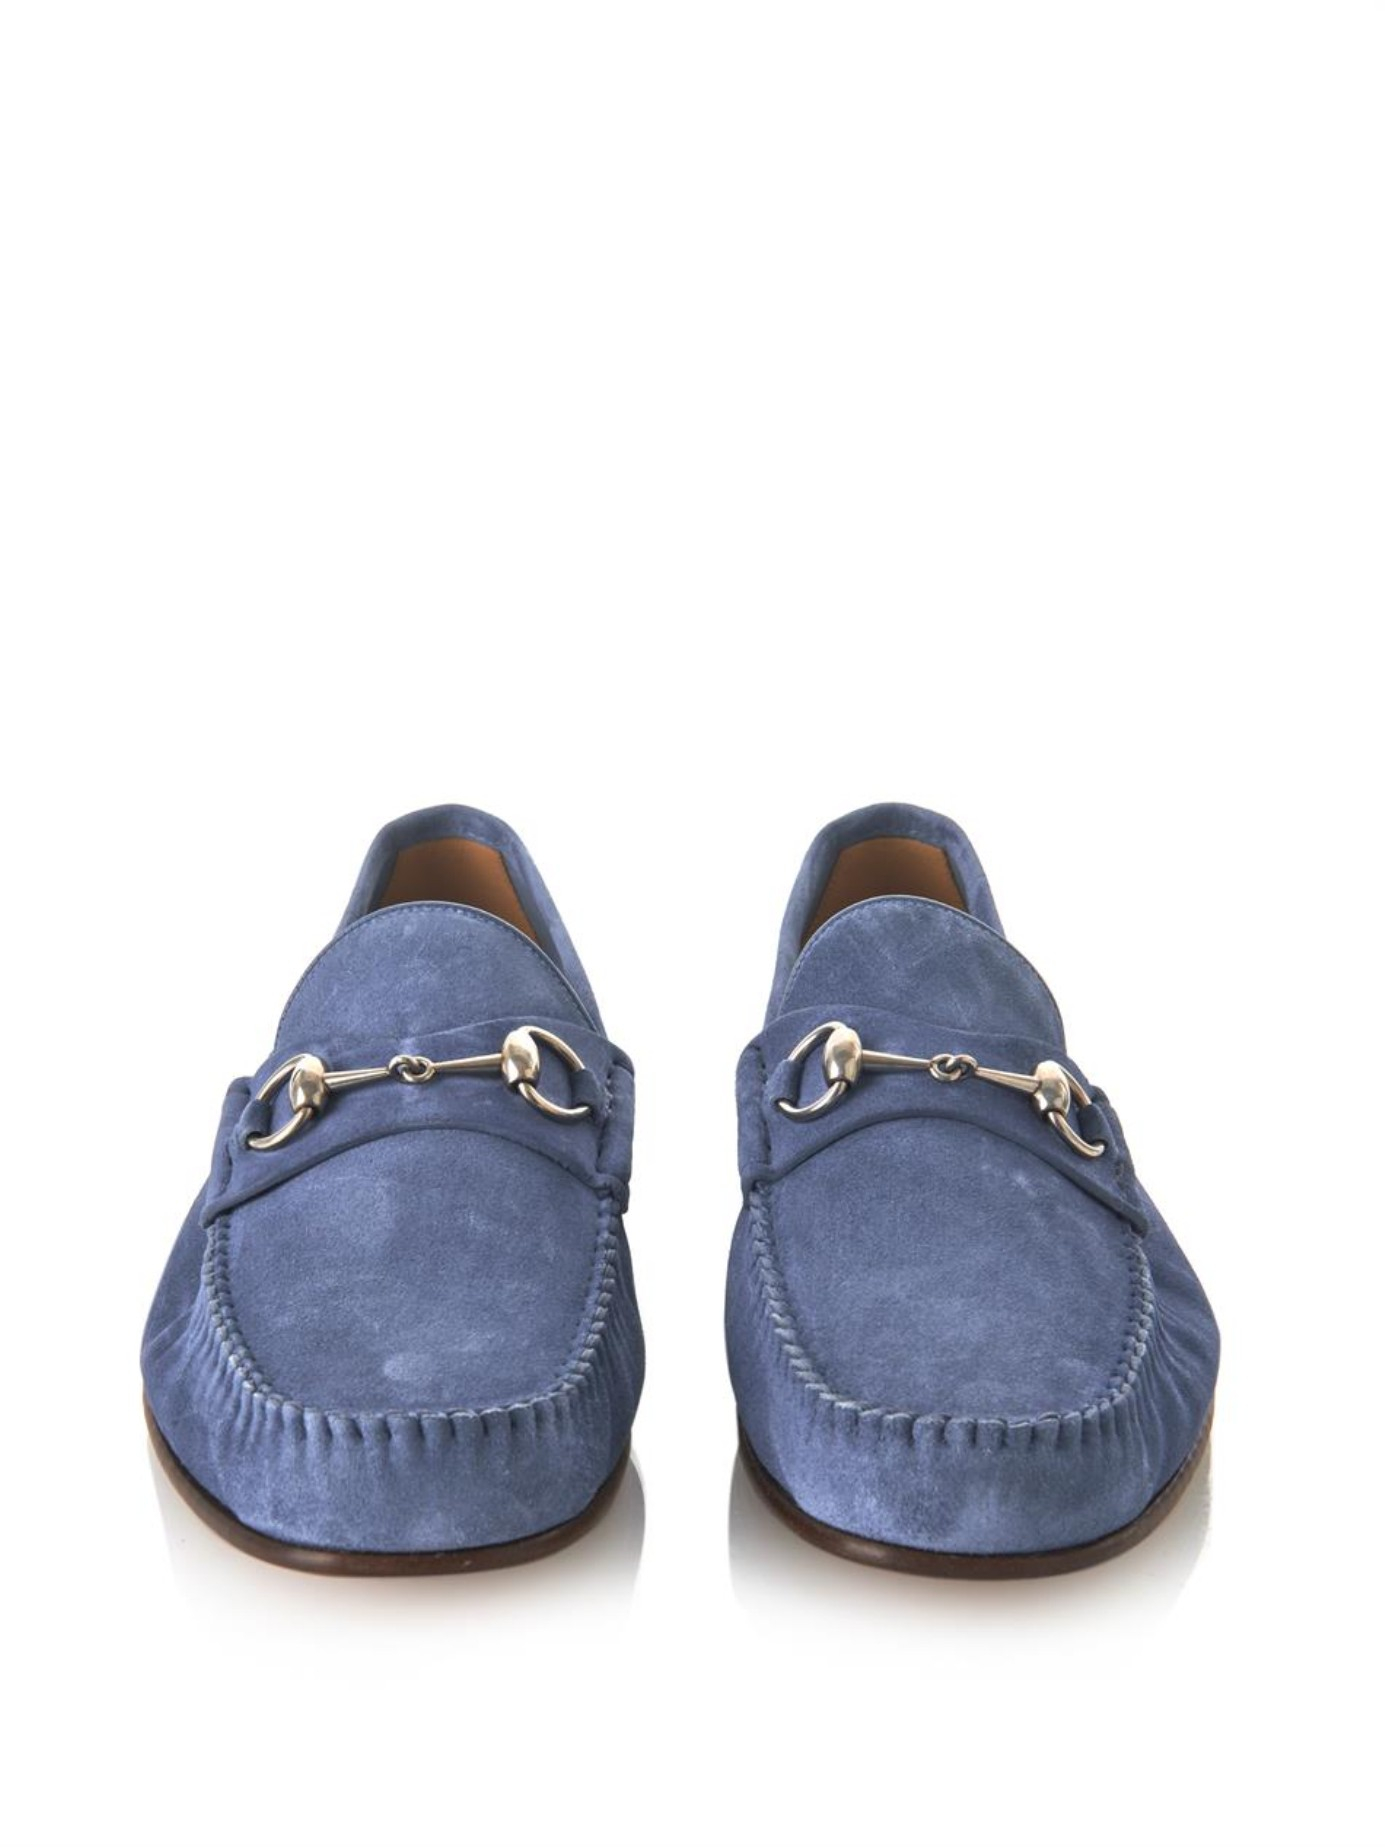 df5aec30084 Lyst - Gucci Roos Suede Loafers in Blue for Men